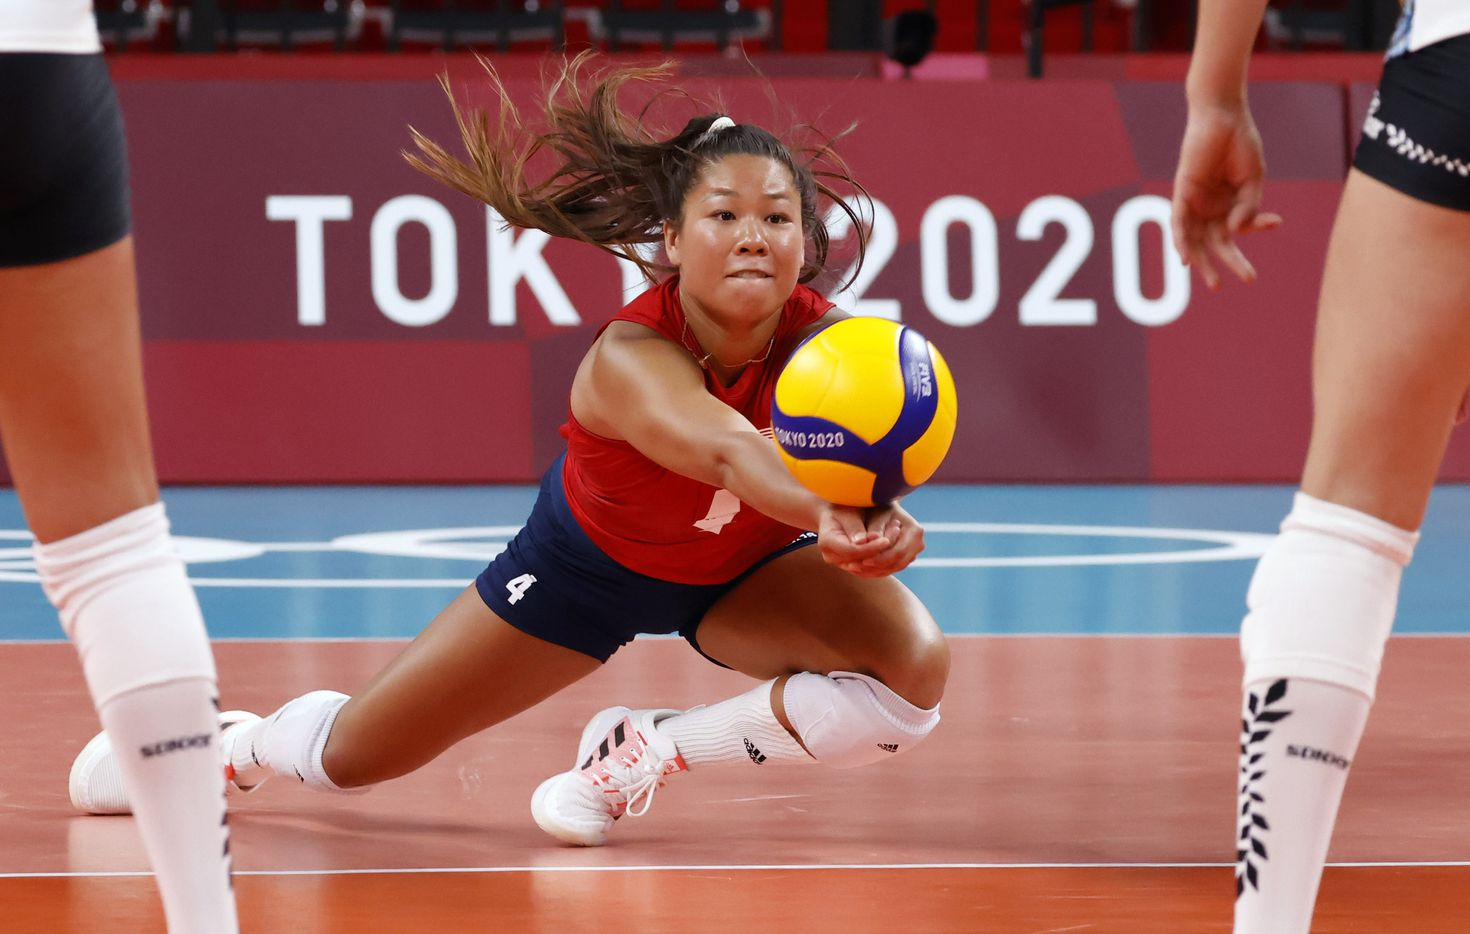 USA's Justine Wong-Orantes (4) digs for the ball in a volleyball game against Argentina during the postponed 2020 Tokyo Olympics at Ariake Arena on Sunday, July 25, 2021, in Tokyo, Japan. USA defeated Argentina 3-0 (25-20, 25-19, 25-20). (Vernon Bryant/The Dallas Morning News)